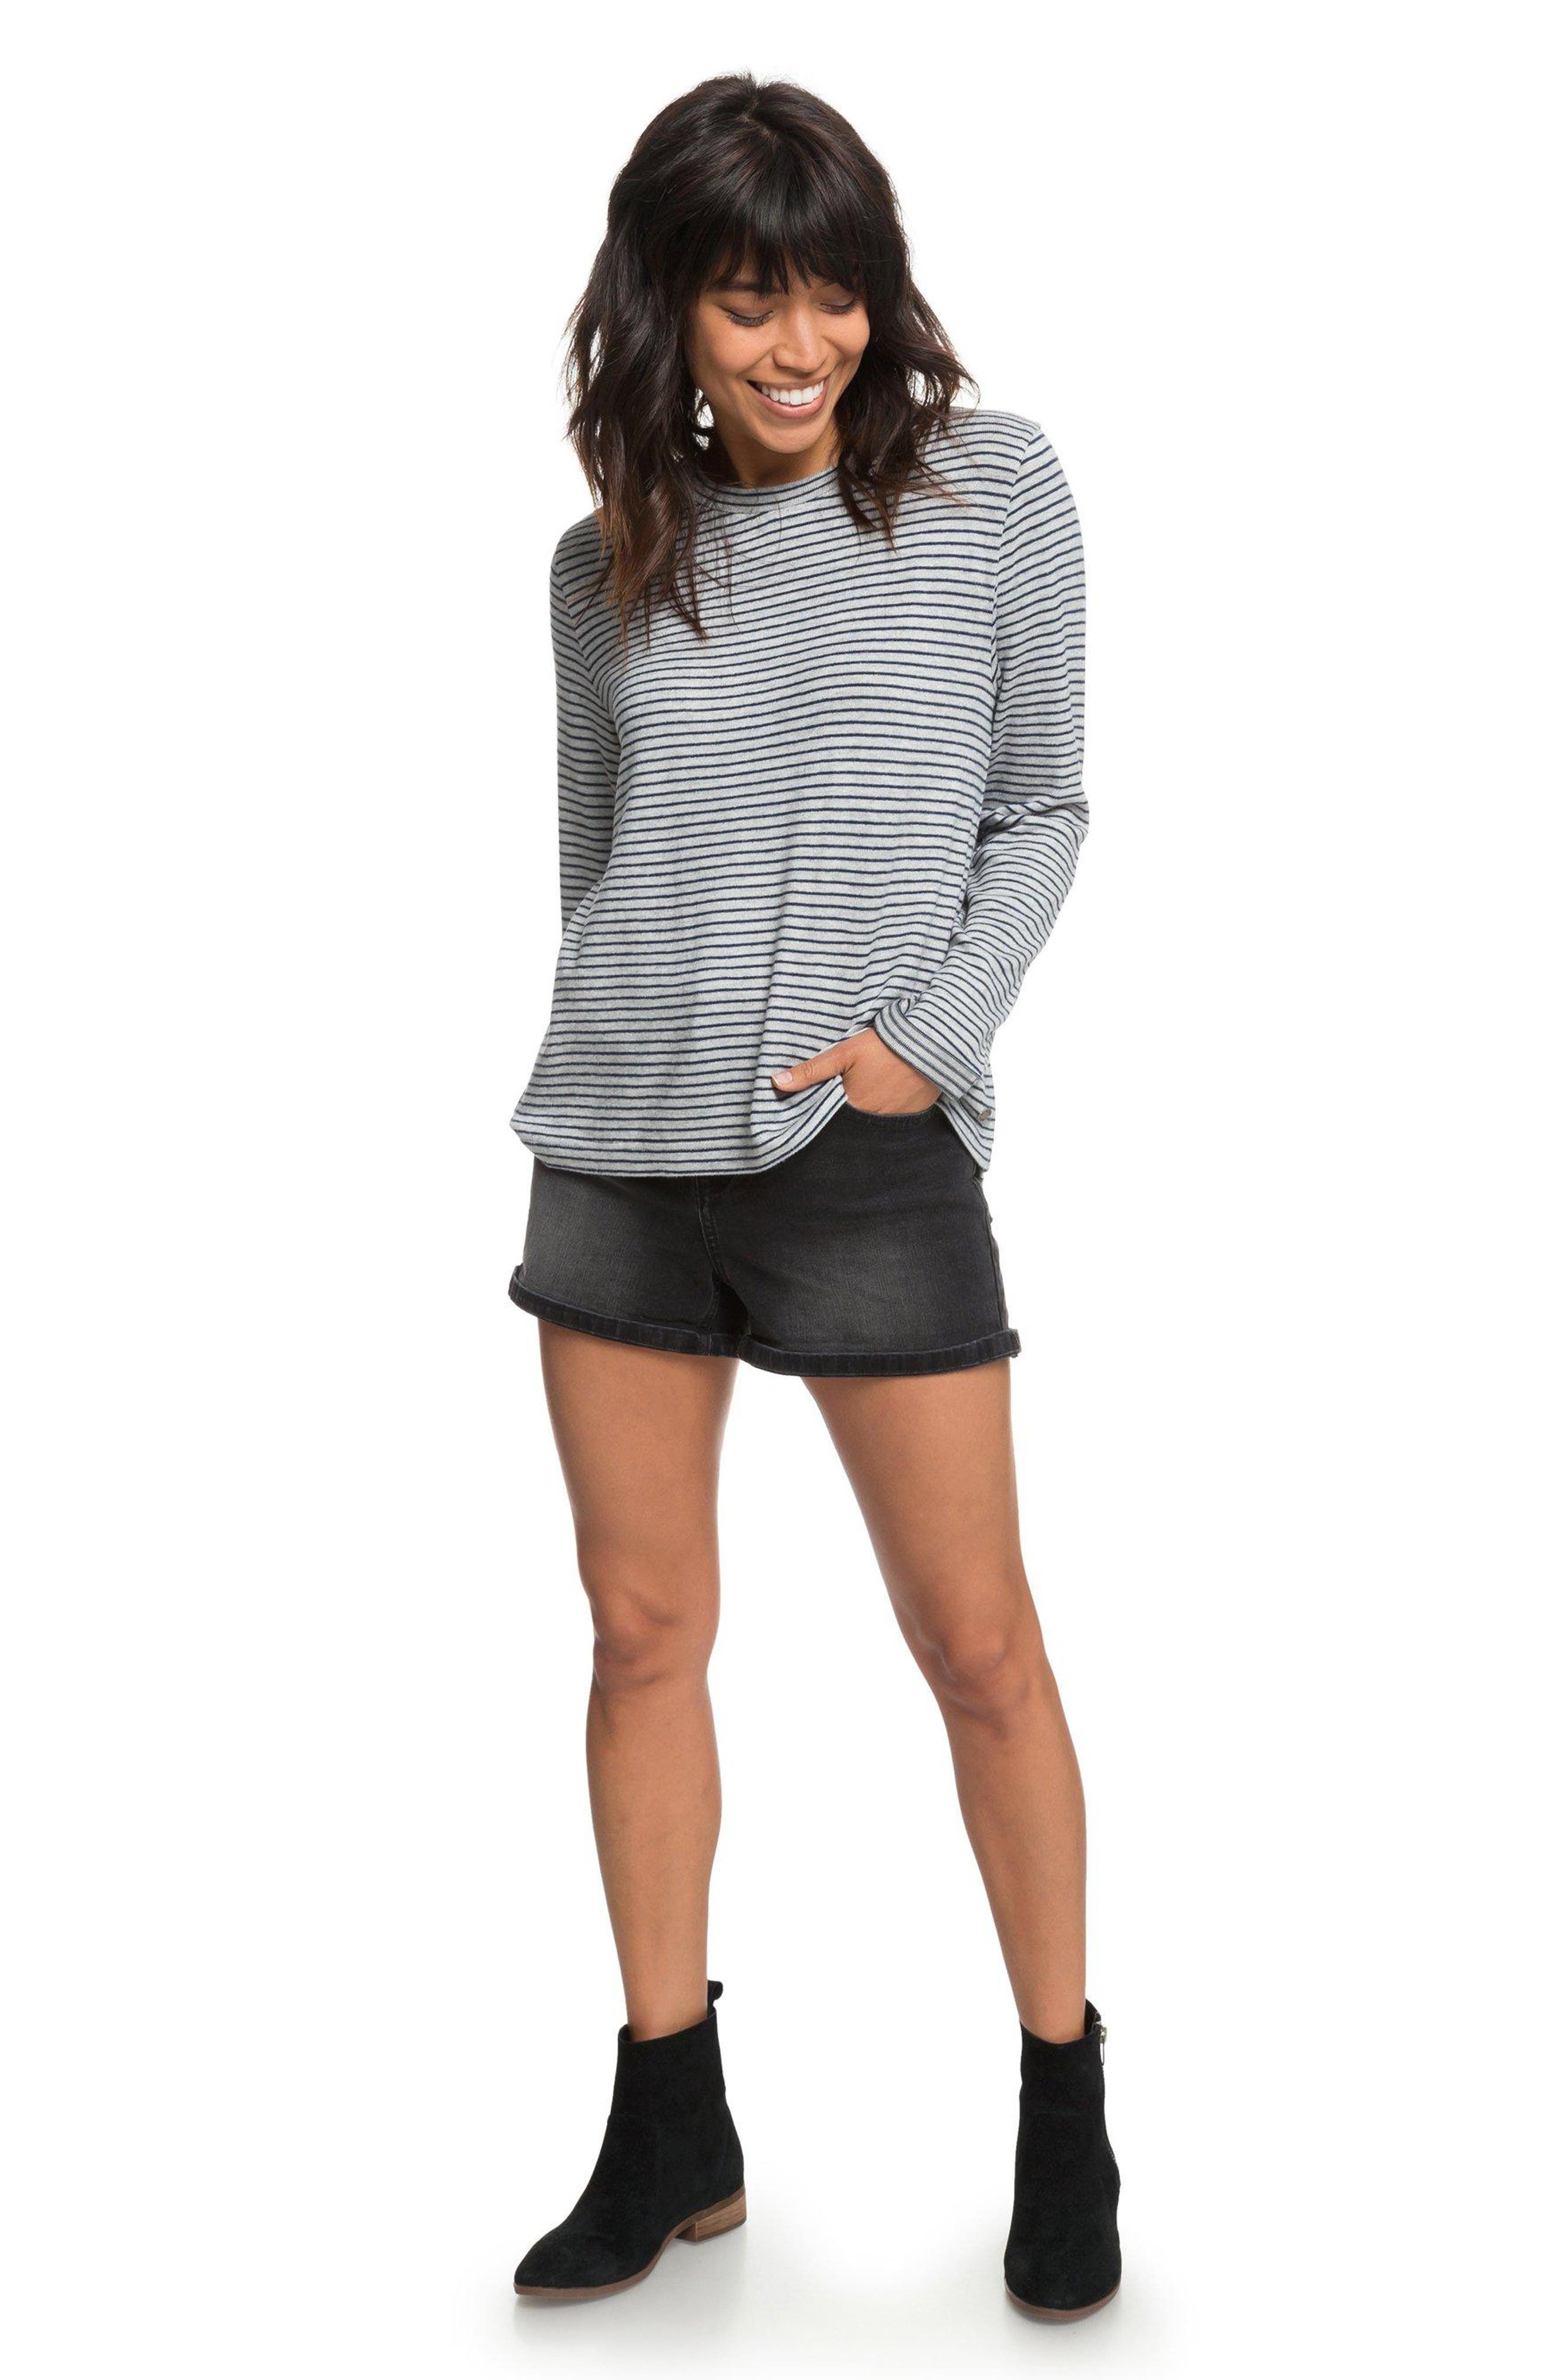 Chasing You Stripe Knit Top,                             Alternate thumbnail 4, color,                             HERITAGE HEATHER THIN STRIPES